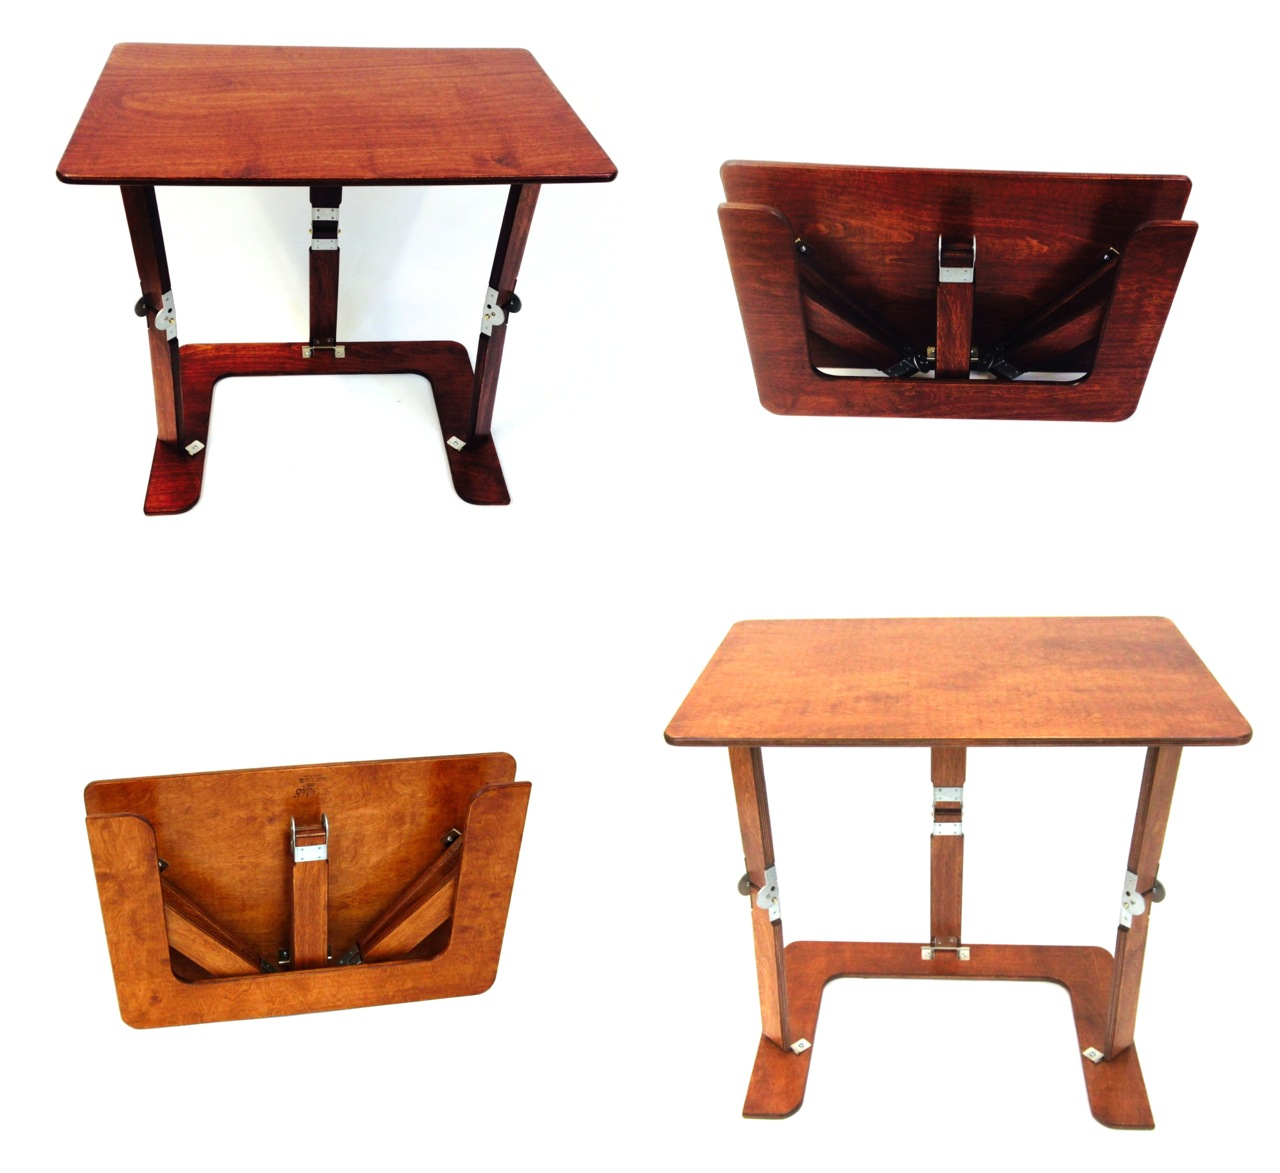 Miraculous Couchdesk Folding Tray Table By Spiderlegs Caraccident5 Cool Chair Designs And Ideas Caraccident5Info